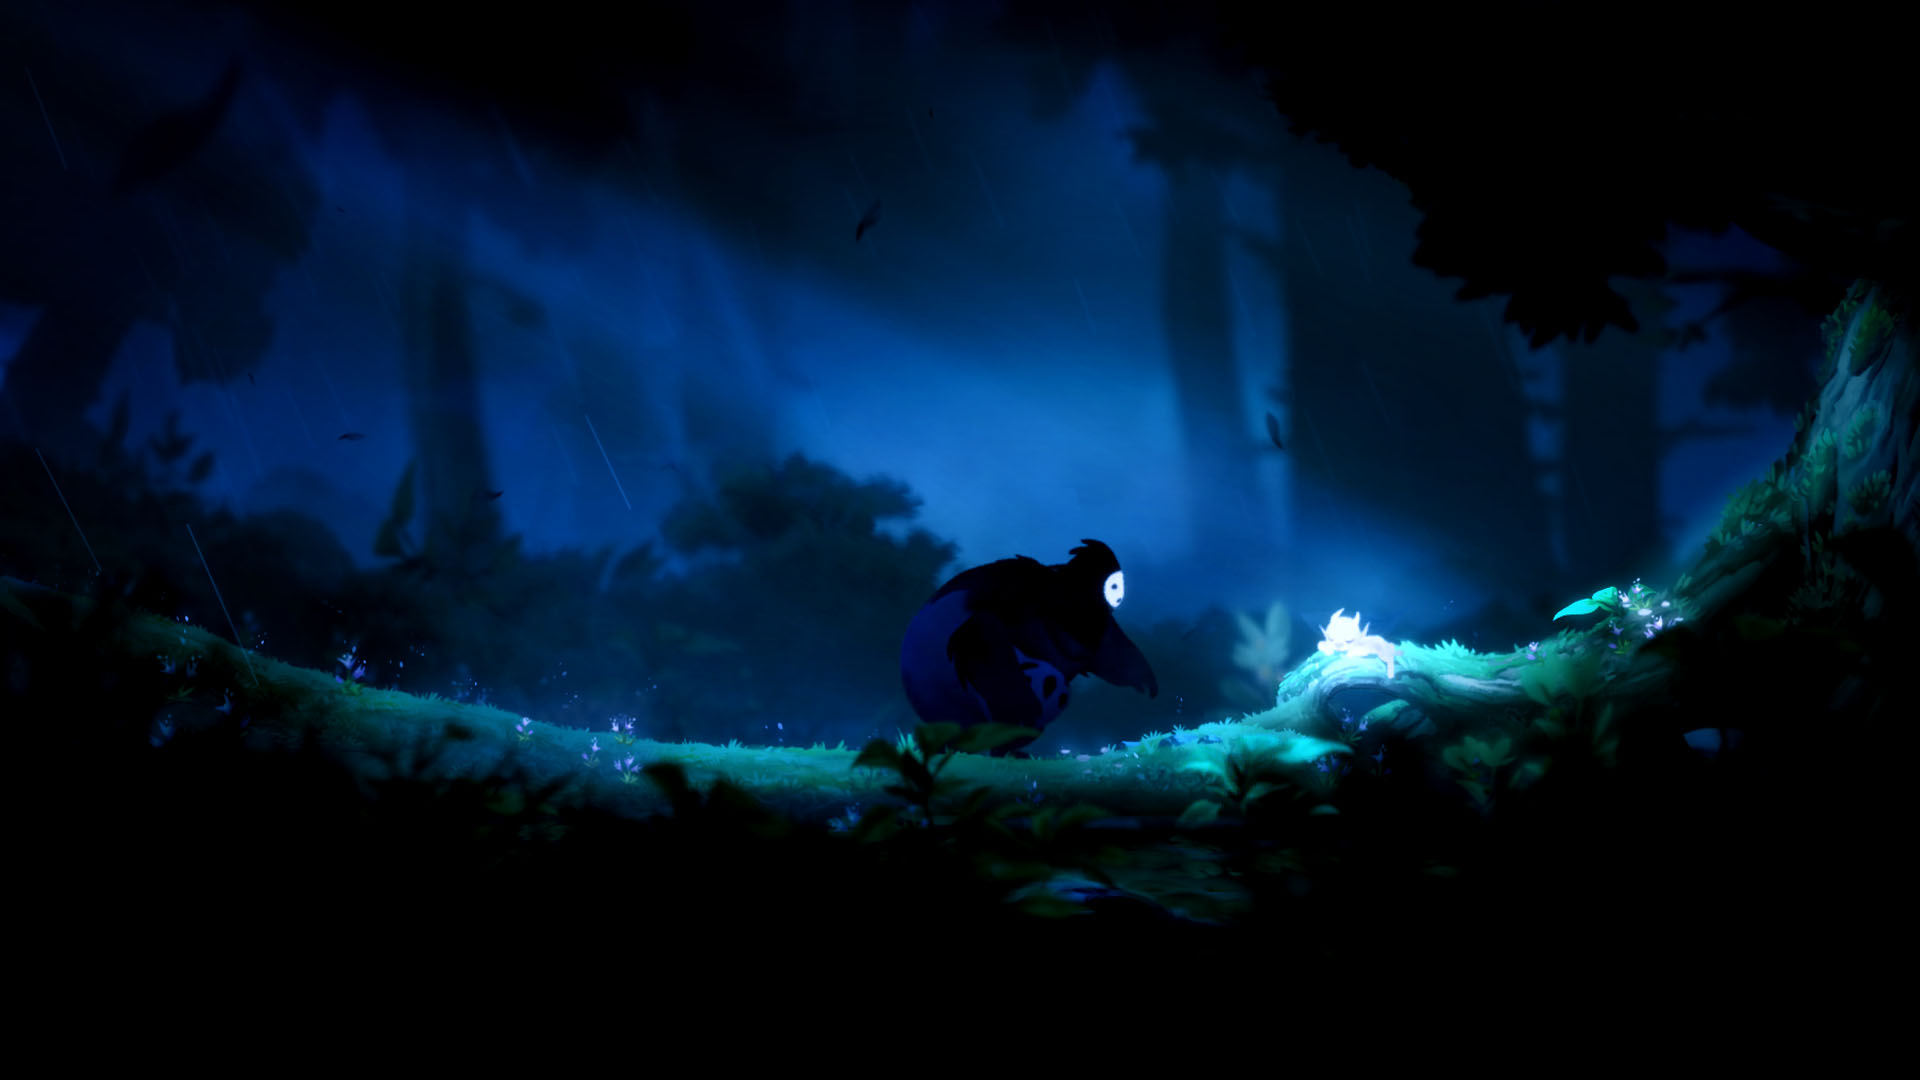 Ori And The Blind Forest Beautiful Ambience Gameplay Screenshot